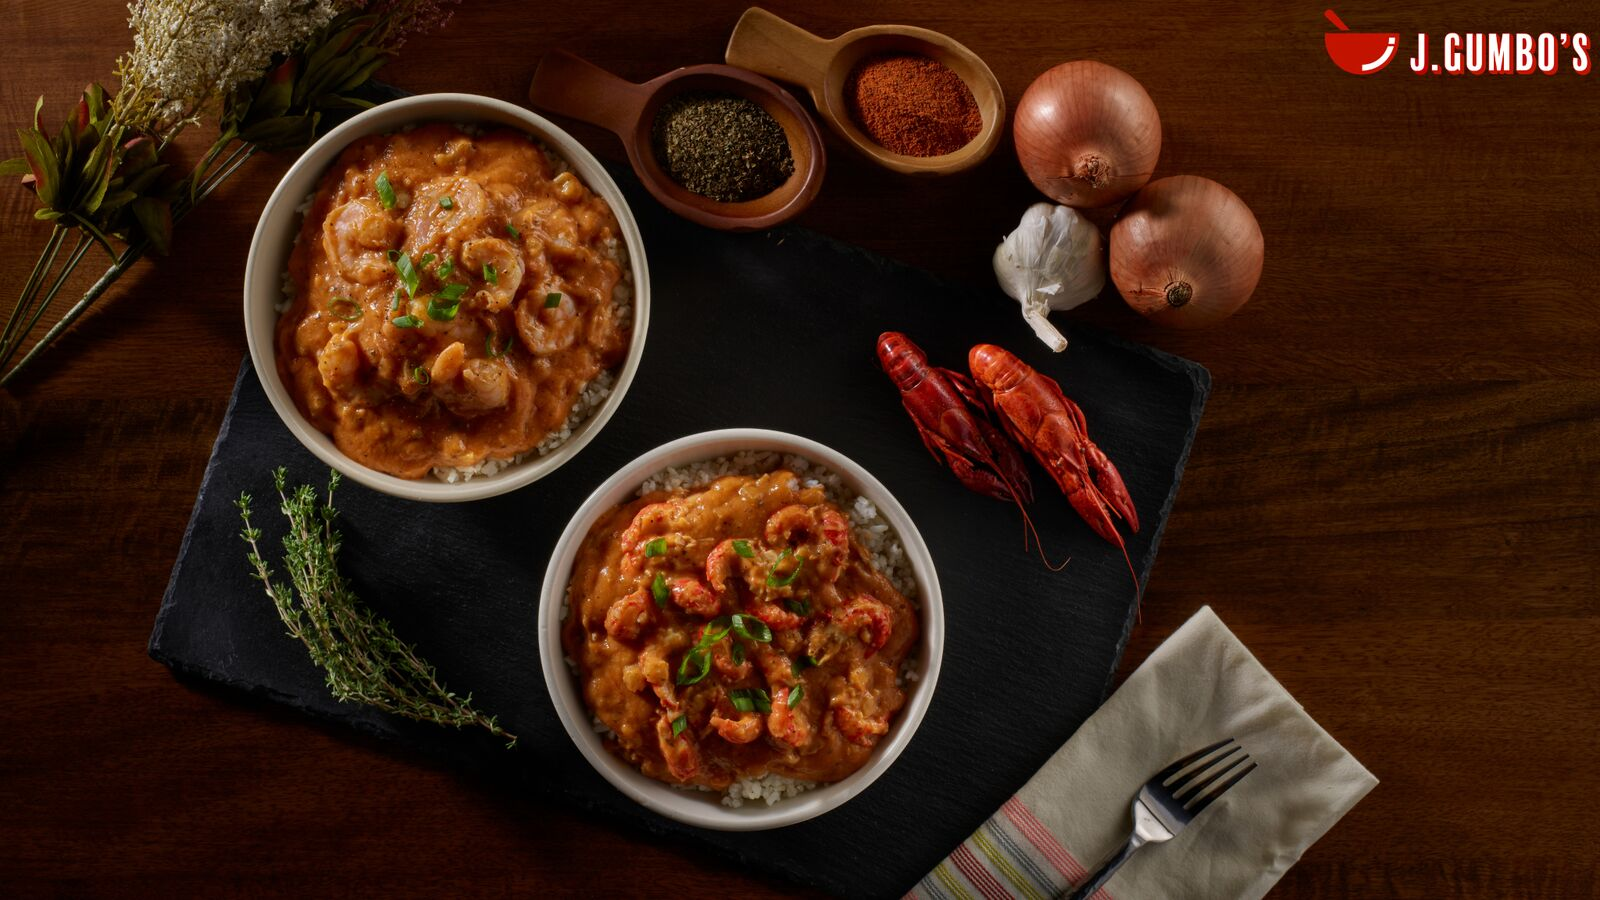 Etouffée Bowls: Choose Crawfish, Shrimp, Or Spinach & Mushroom Slowly Smothered In Our Golden Roux With Celery & Onion Then Seasoned With Black, White & Red Pepper